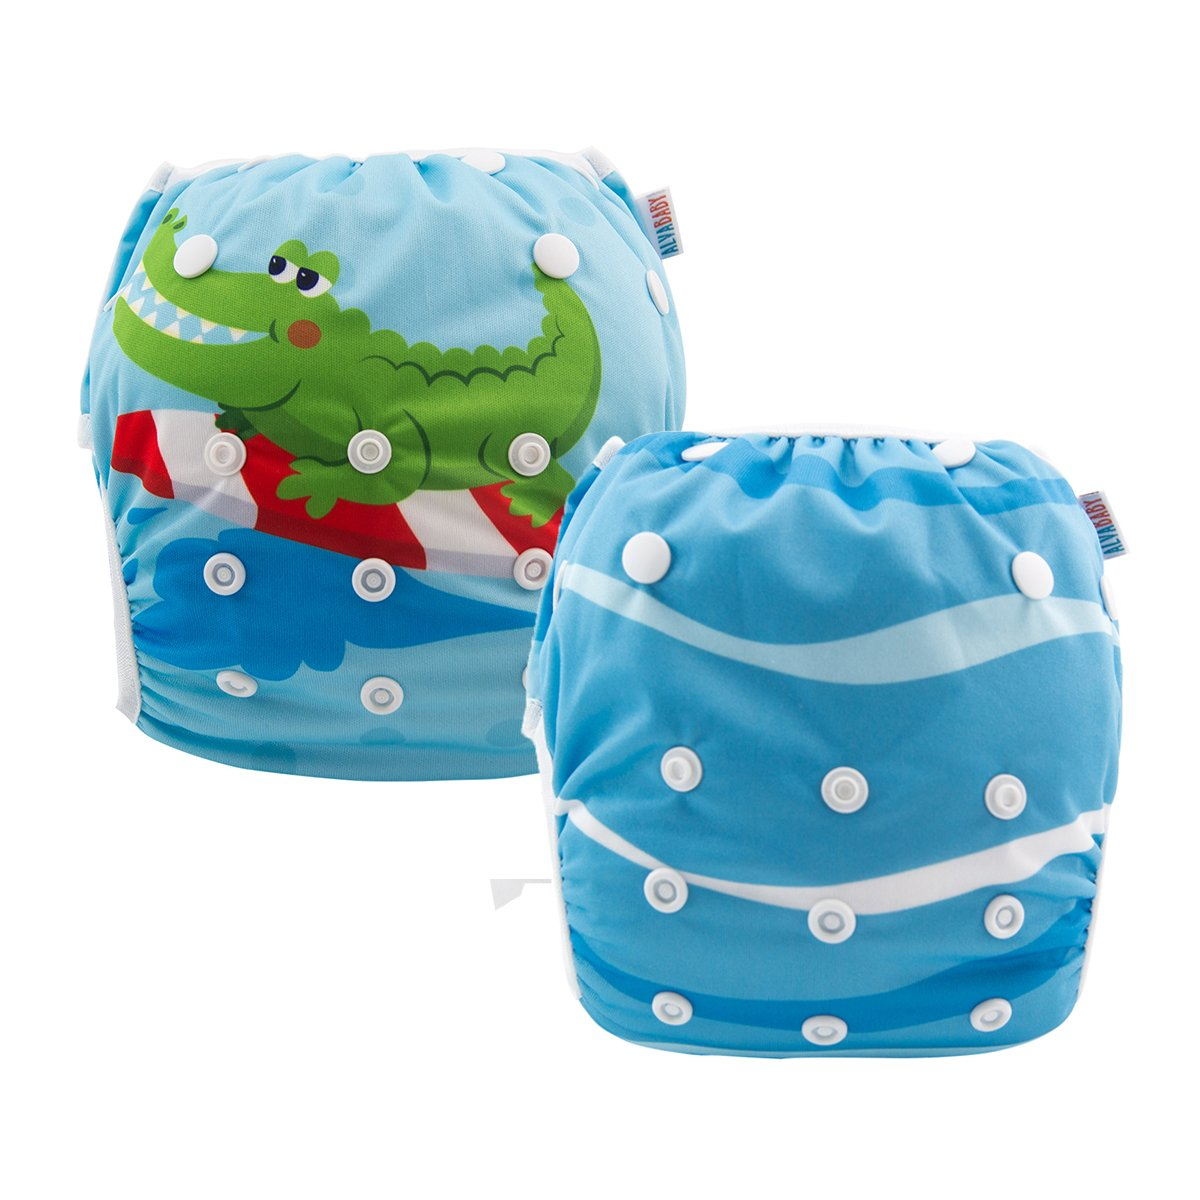 ALVABABY Swim Diapers Reuseable Washable & Adjustable 2 PCS One Size DYK29-30-294-CA